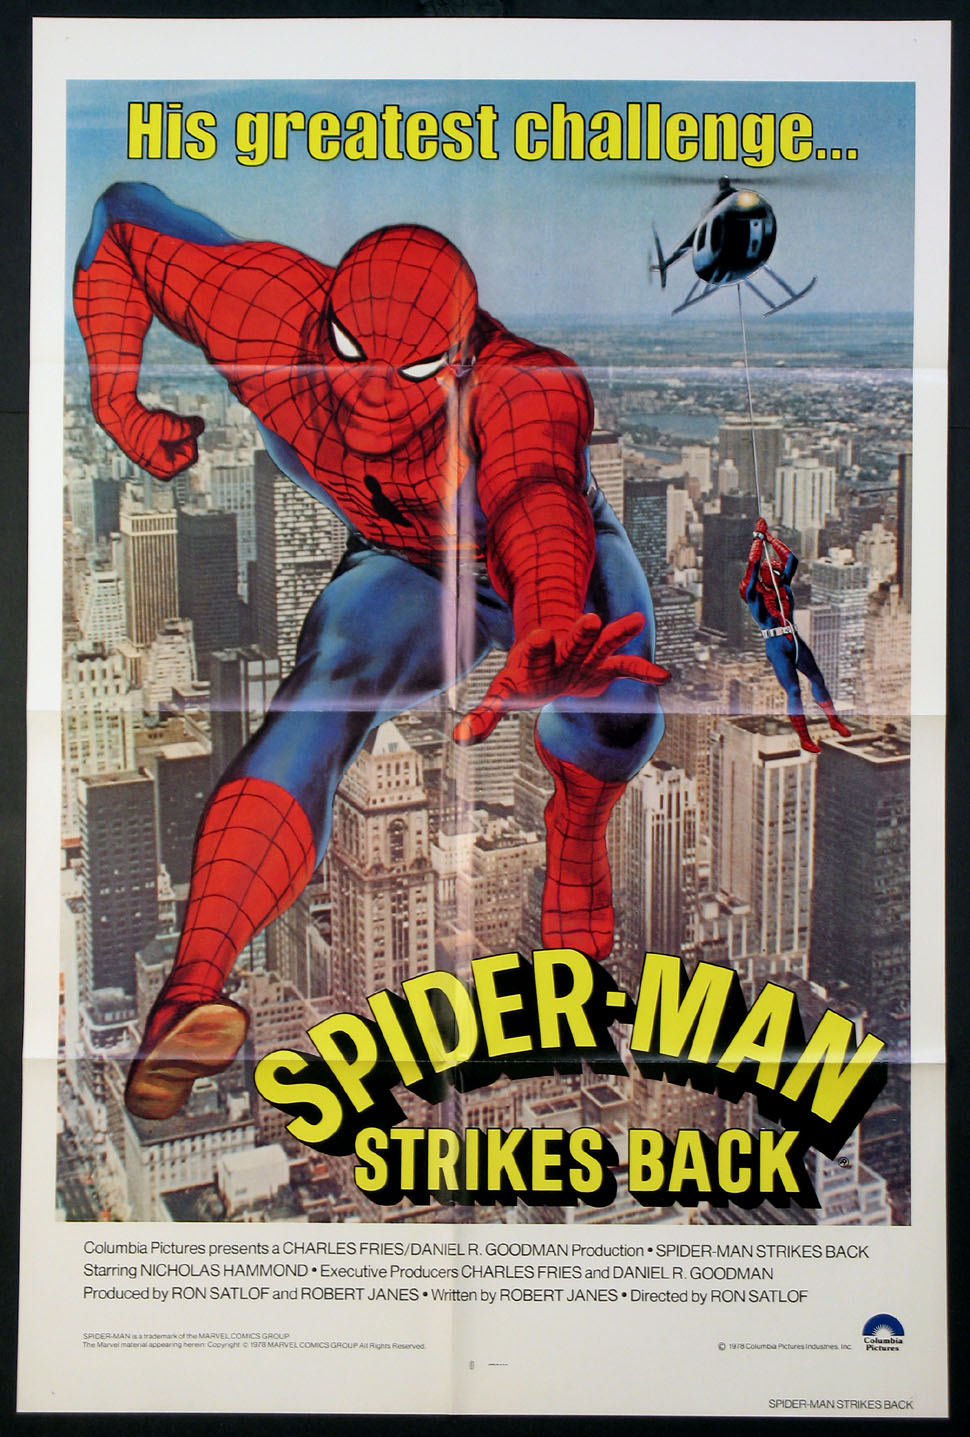 SPIDER-MAN STRIKES BACK (Spiderman) @ FilmPosters.com